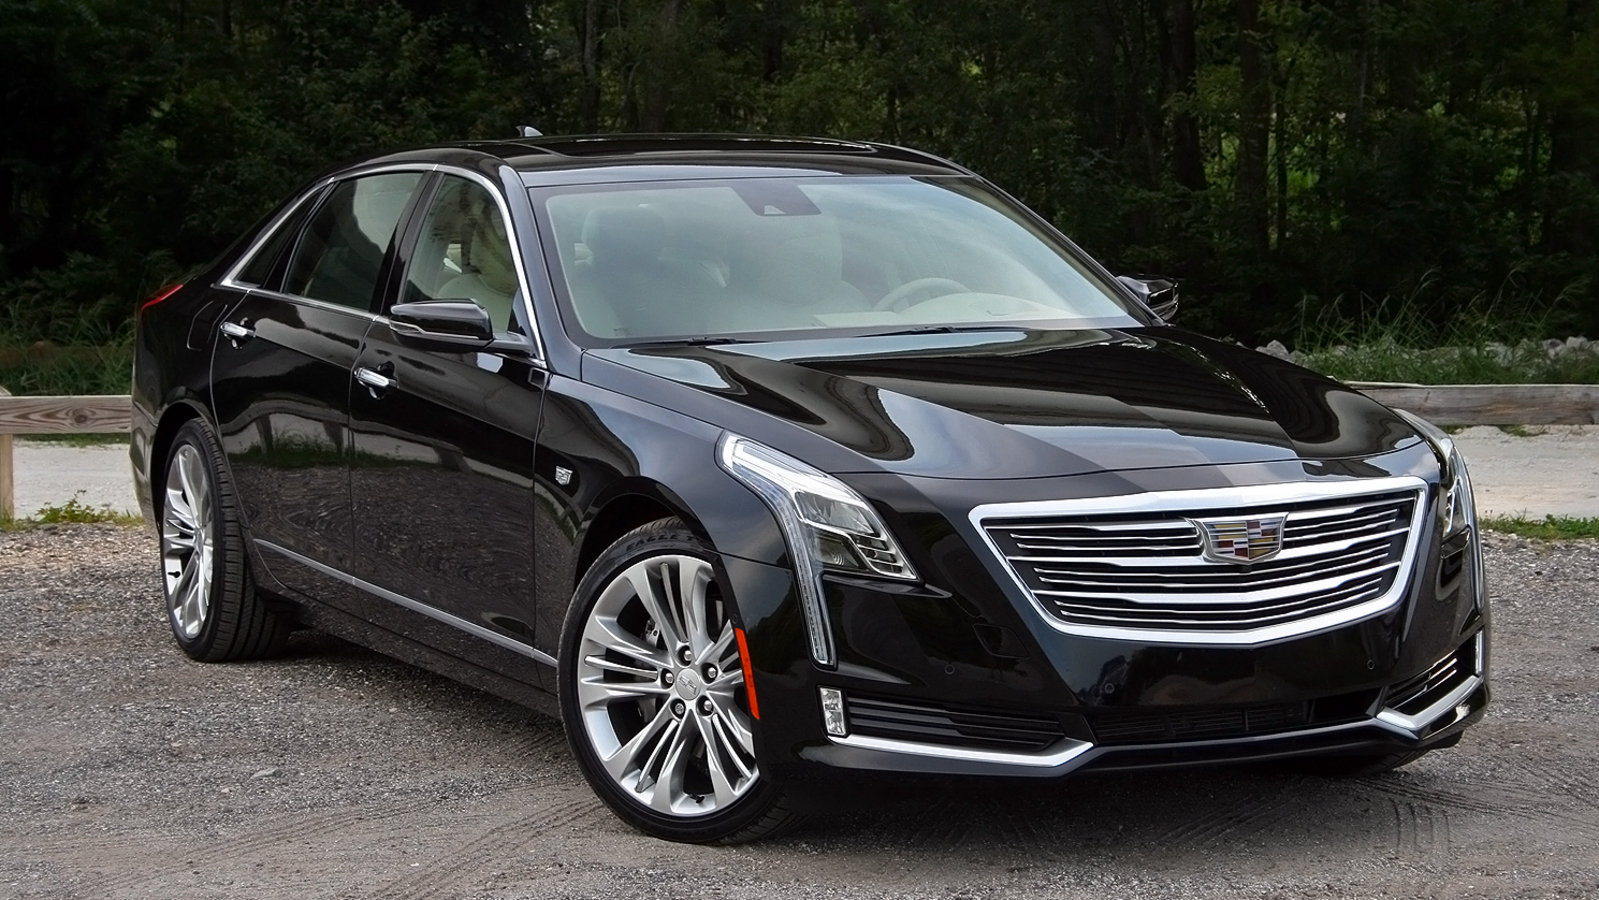 2016 Cadillac CT6 – Driven Review - Top Speed